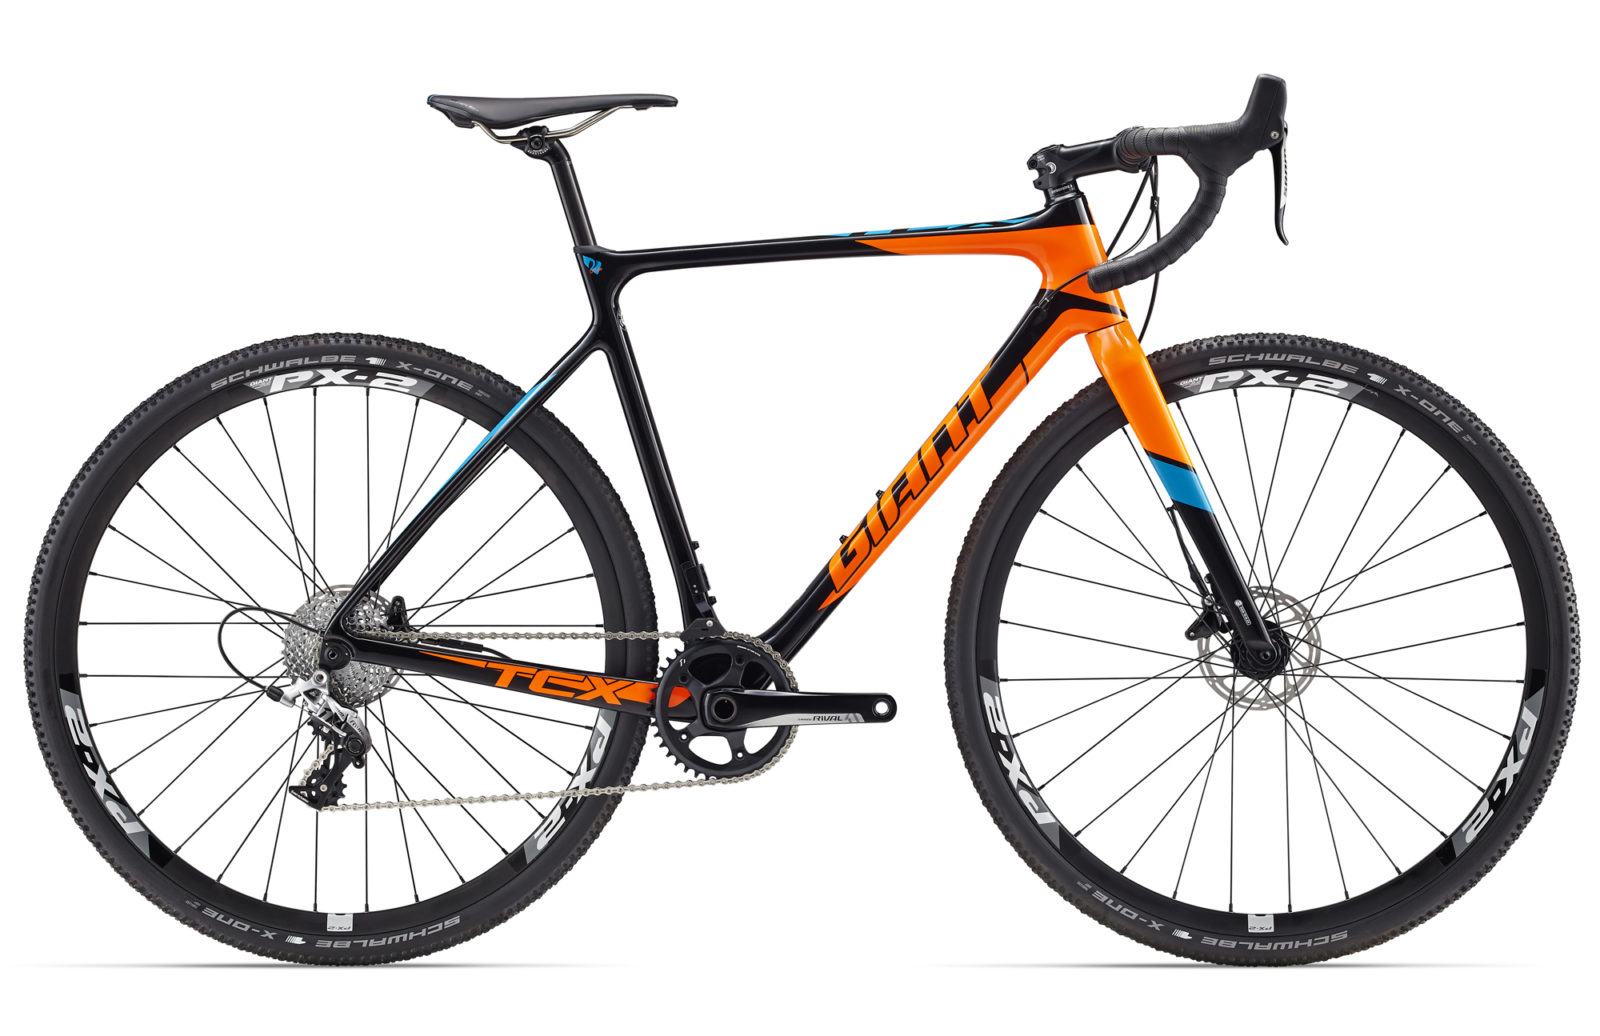 Giant X-Road TCX Advanced Pro 2 LTD 2018